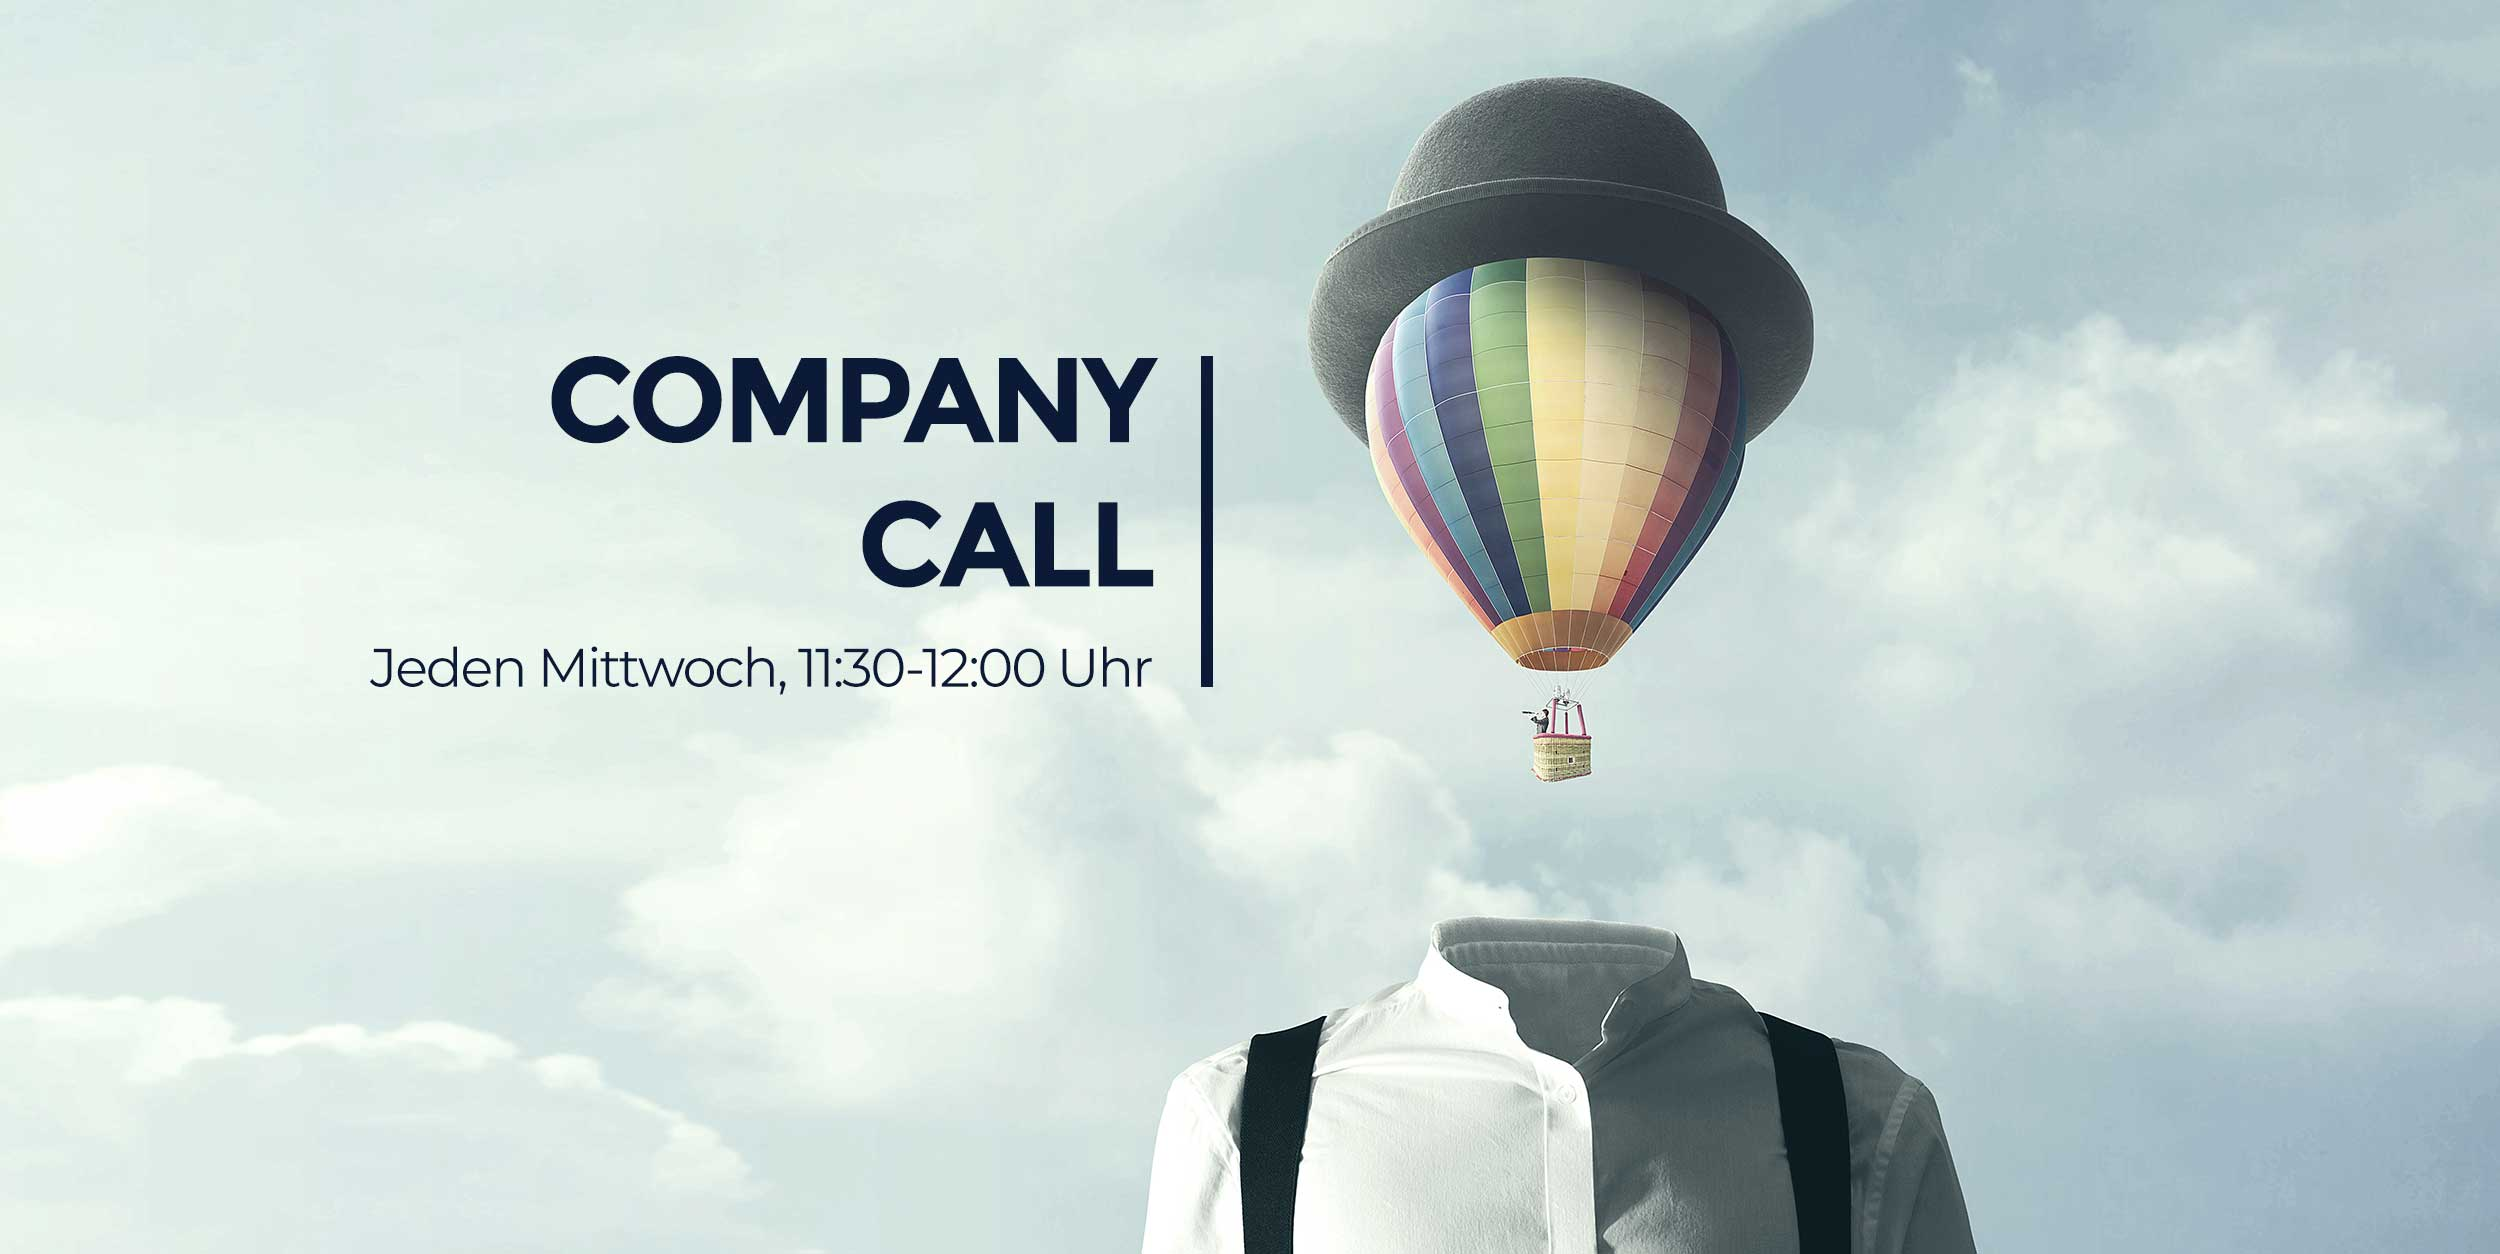 Weekly Company Call, mittwochs 11:30 bis 12:00 Uhr